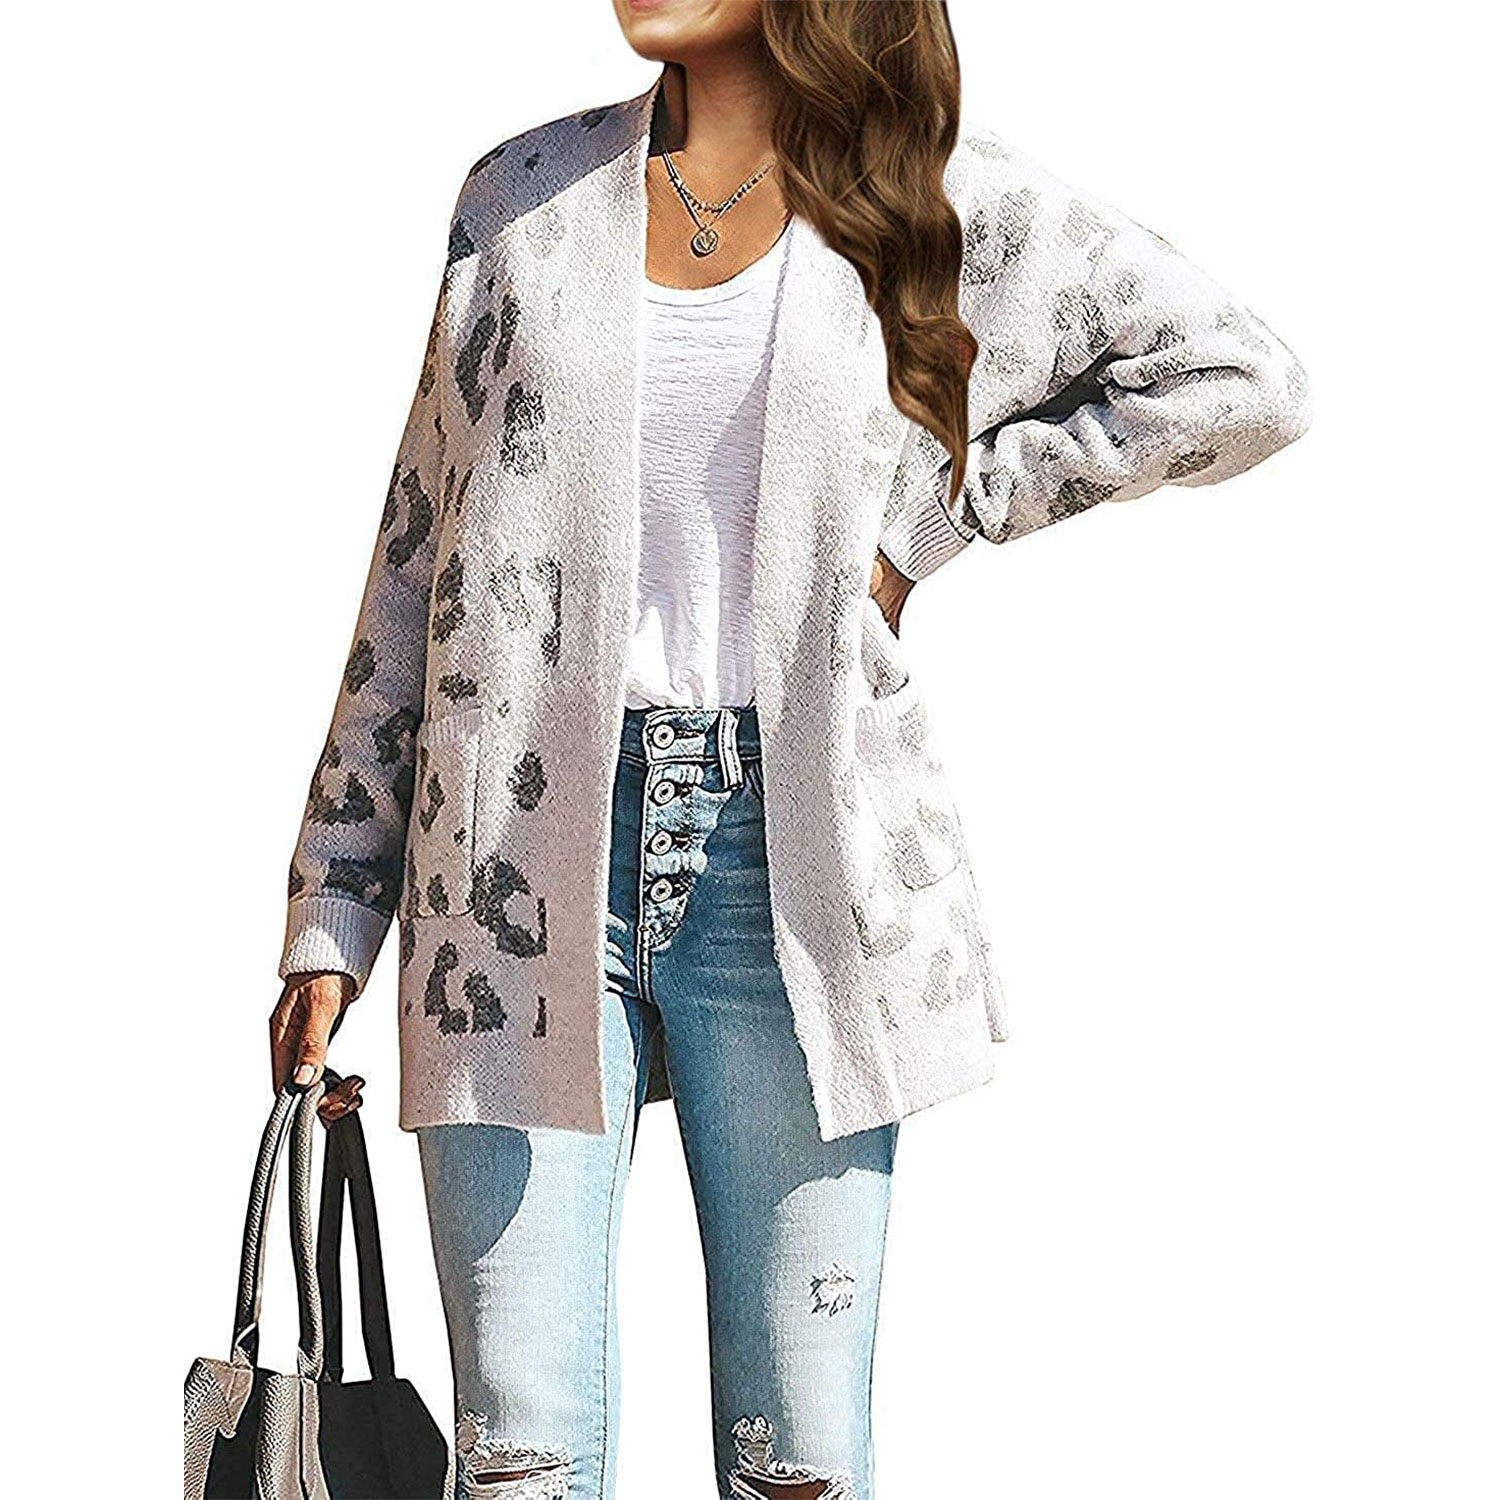 women's long sleeves leopard print knitted sweater cardigan